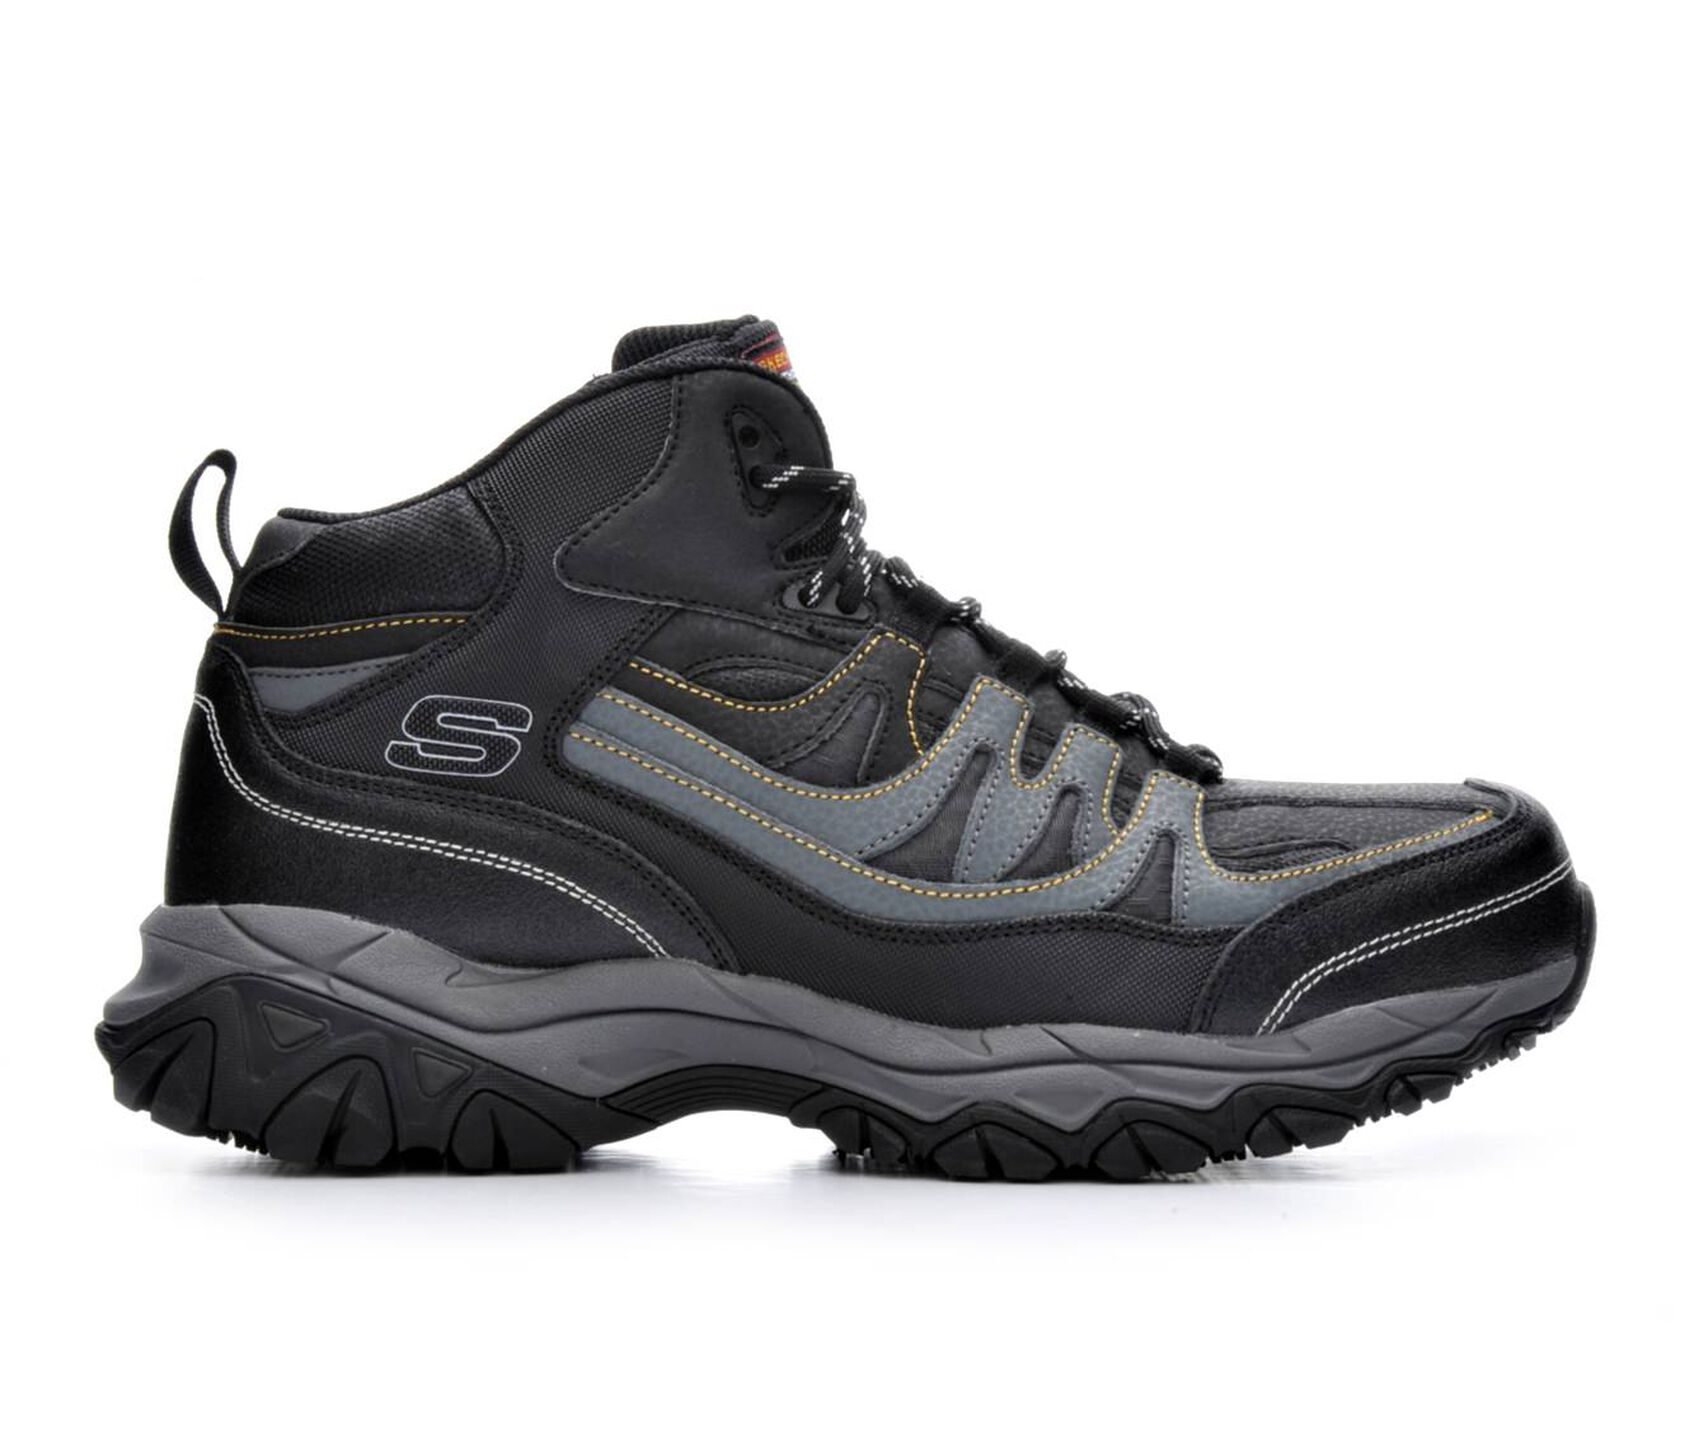 3c189f5e313 ... Skechers Work Rebem 77108 Steel Toe Work Boots. Previous